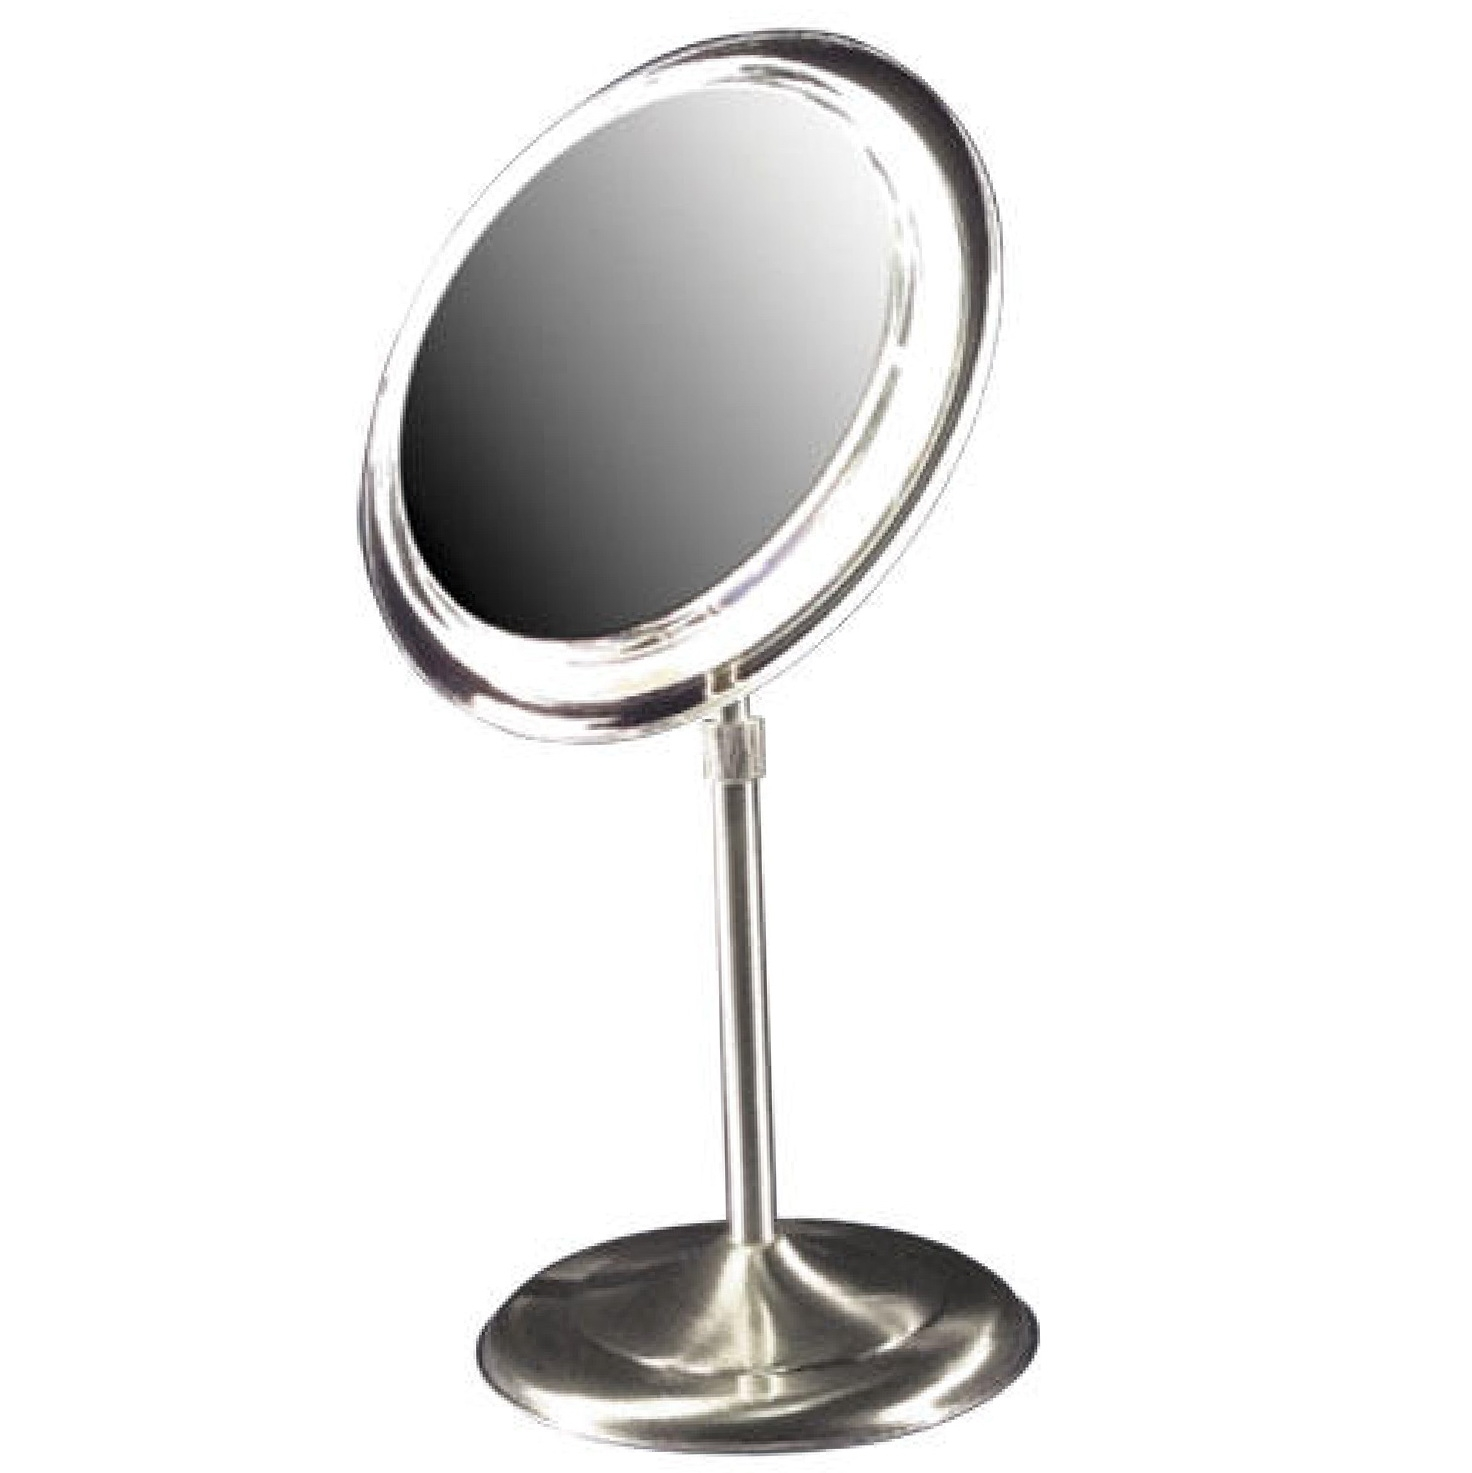 Makeup Vanity Mirror | Best Lighted Makeup Mirror | Lighted Makeup Mirror Bed Bath and Beyond